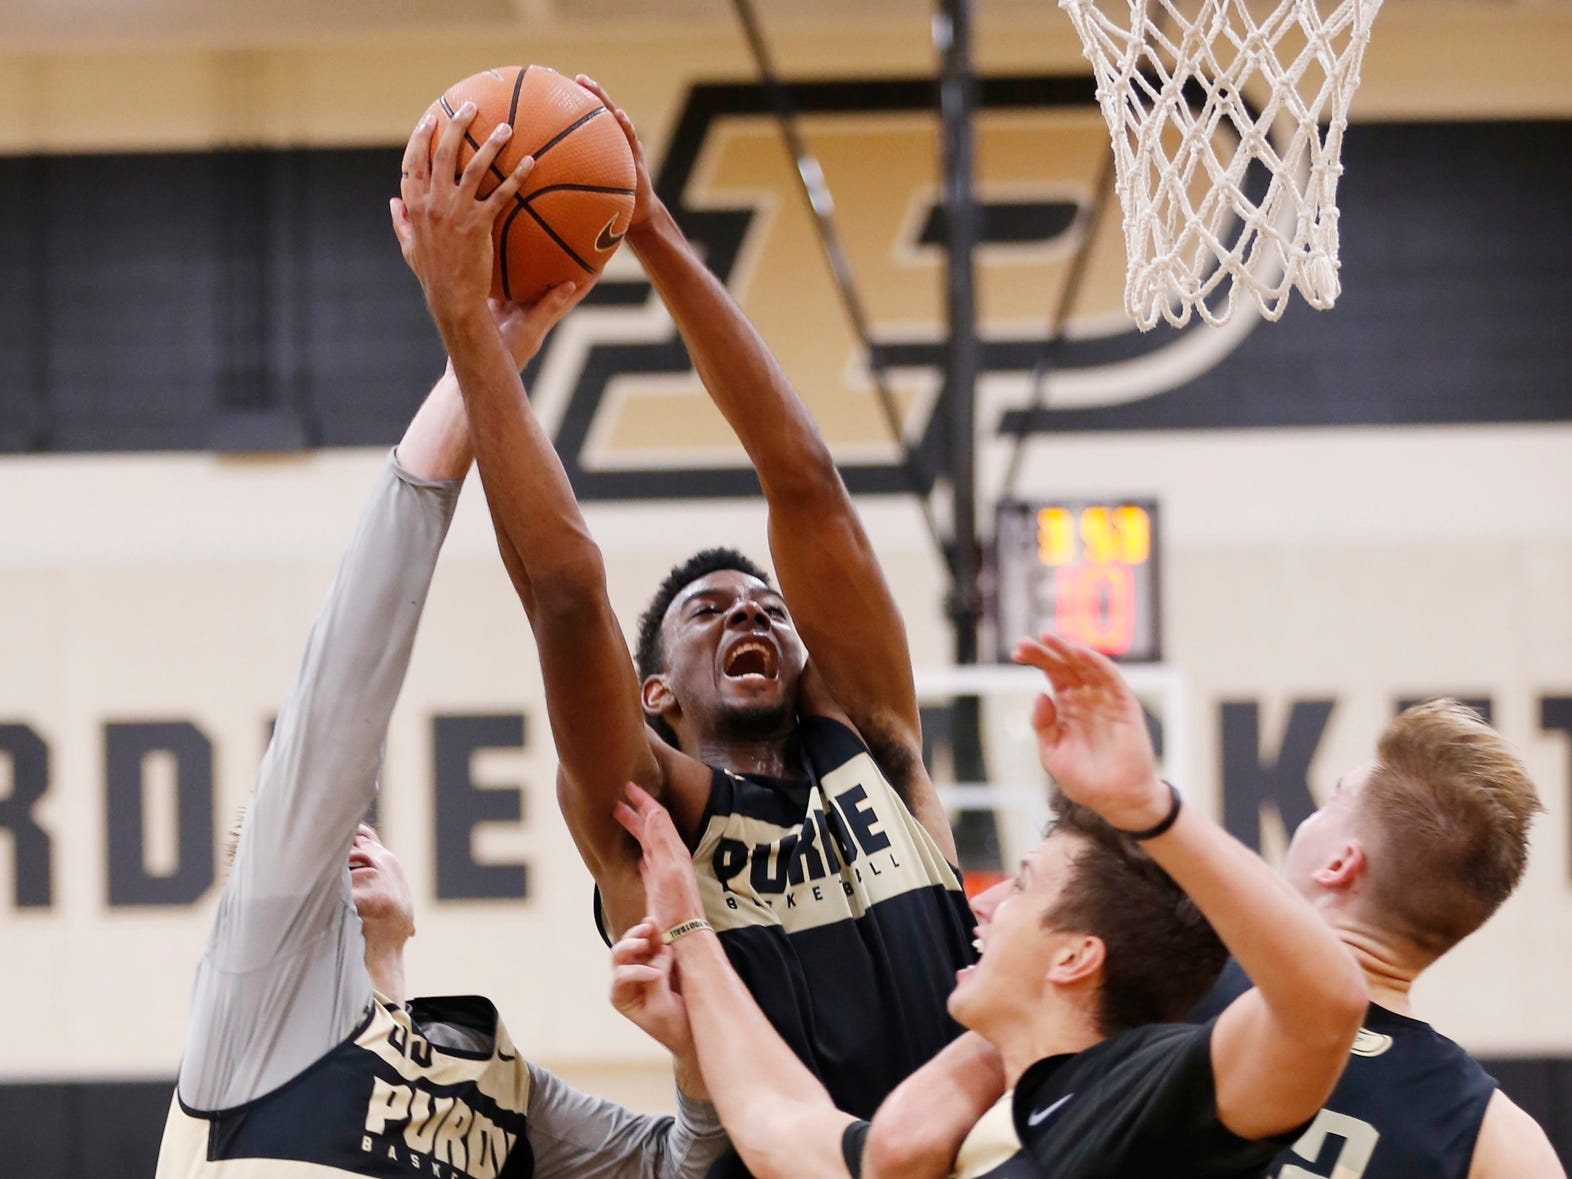 Aaron Wheeler pulls down a rebound during the first official practice of the season for Purdue men's basketball Tuesday, September 25, 2018, at Cardinal Court in Mackey Arena.